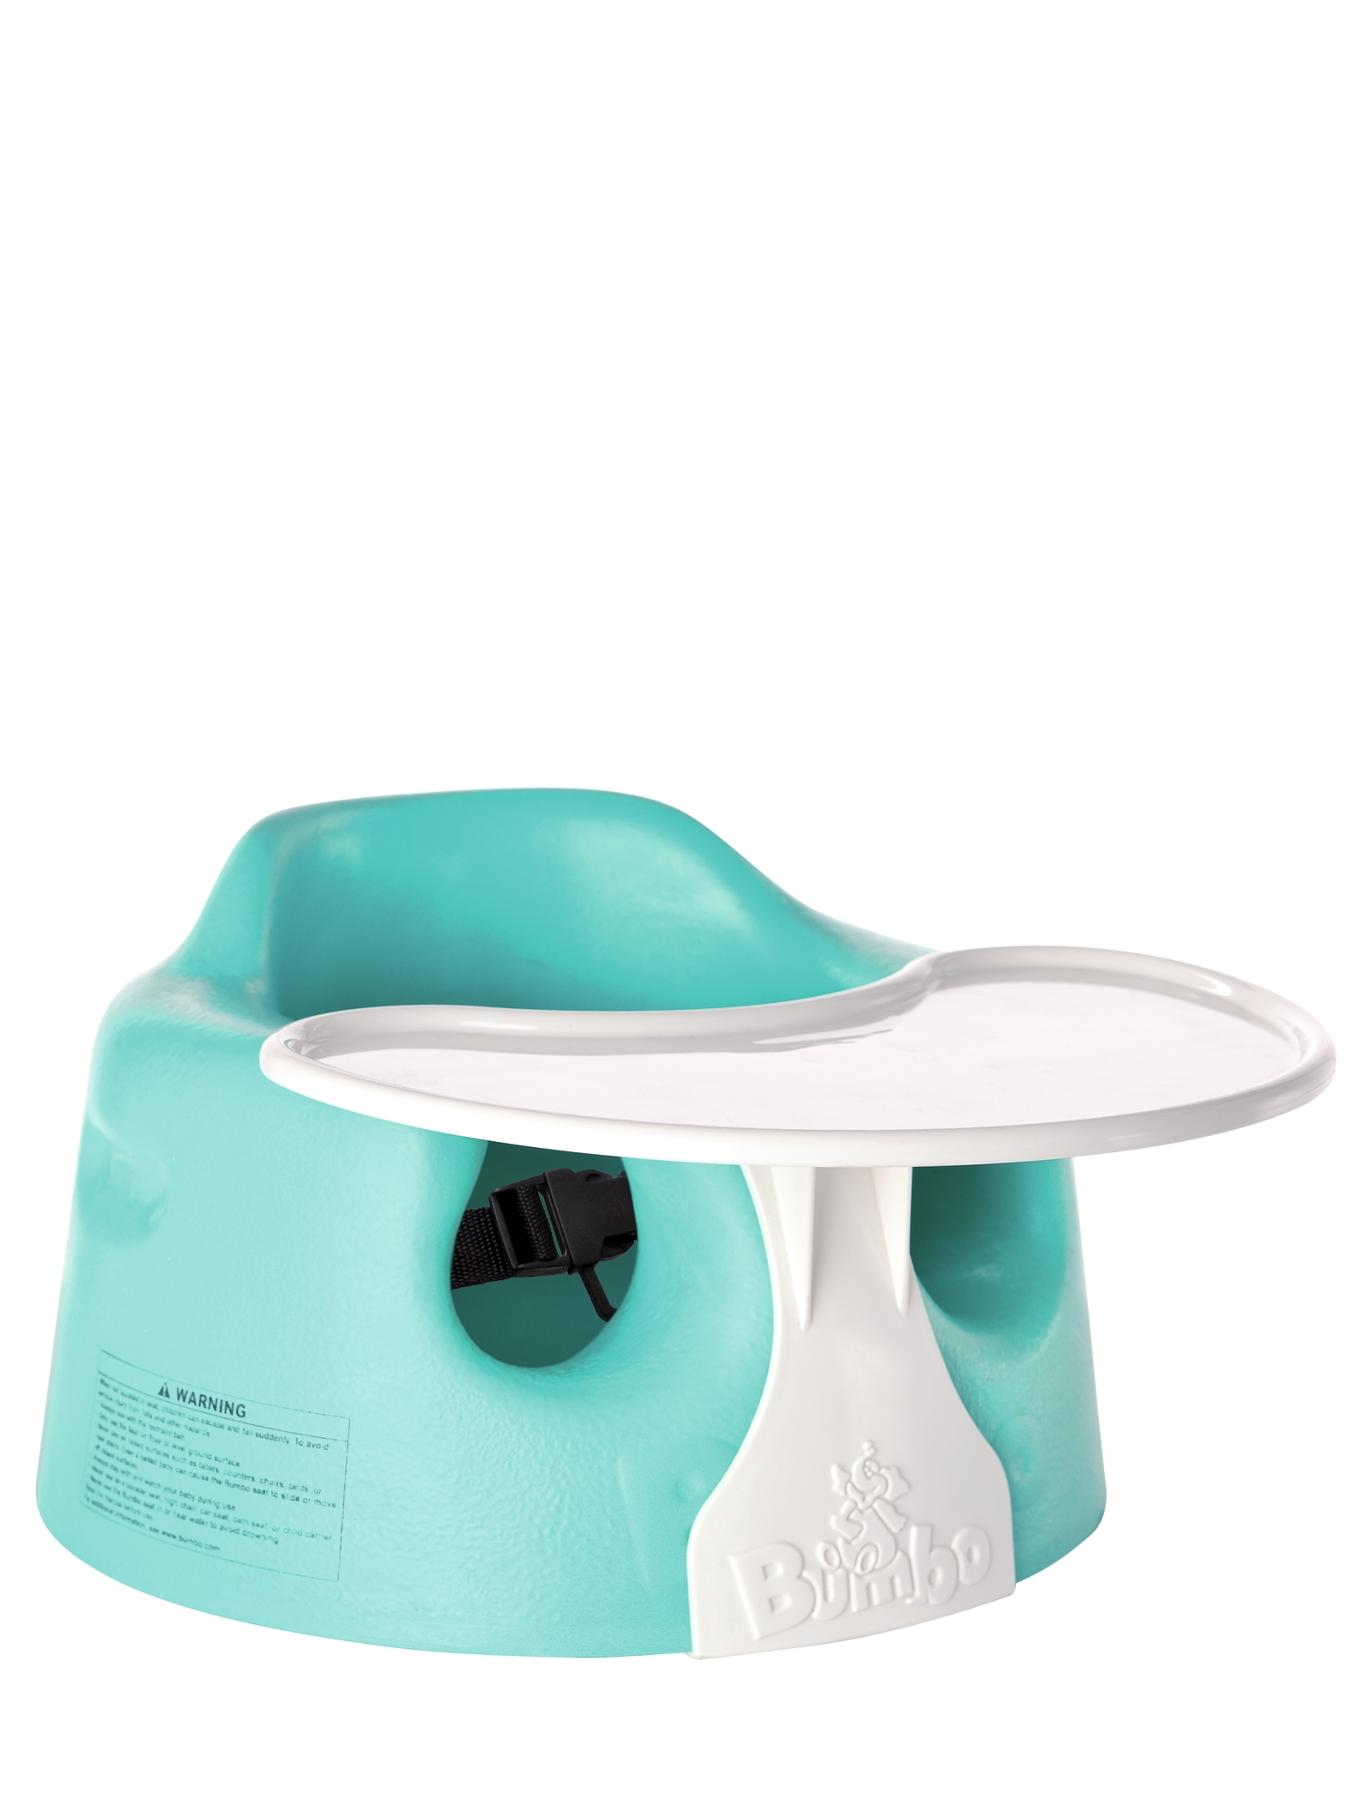 Tomy Bumbo Combo Seat and Tray - Blue, Blue,Aqua,Pink